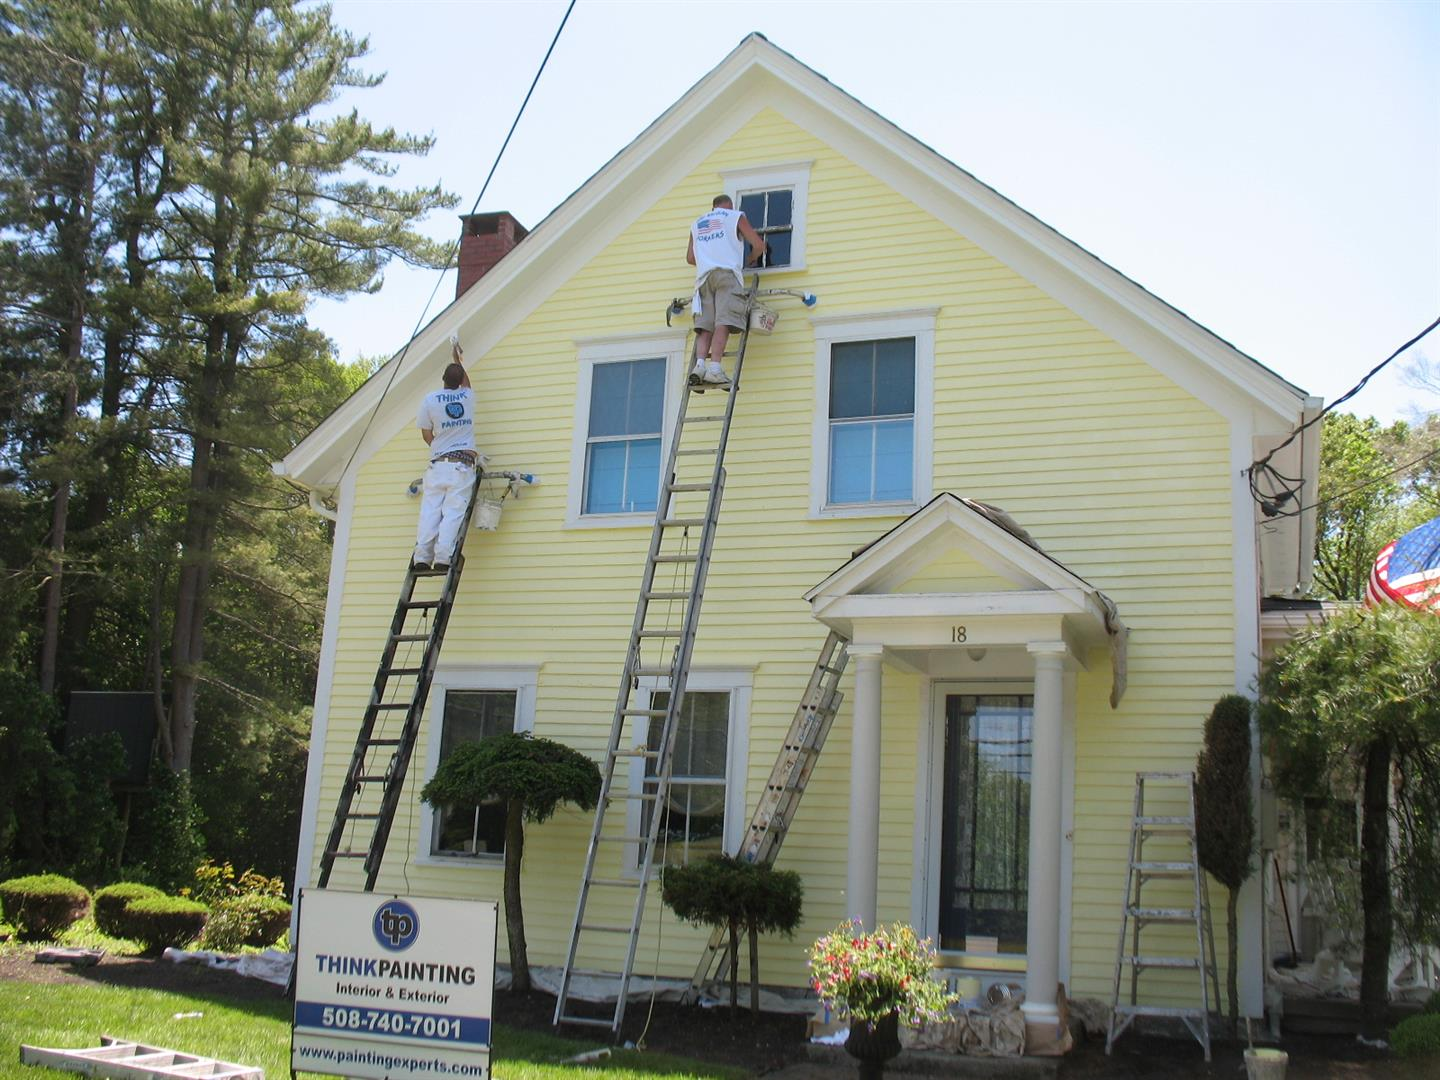 House painters in massachusetts and rhode island - Exterior home painting pictures paint ...